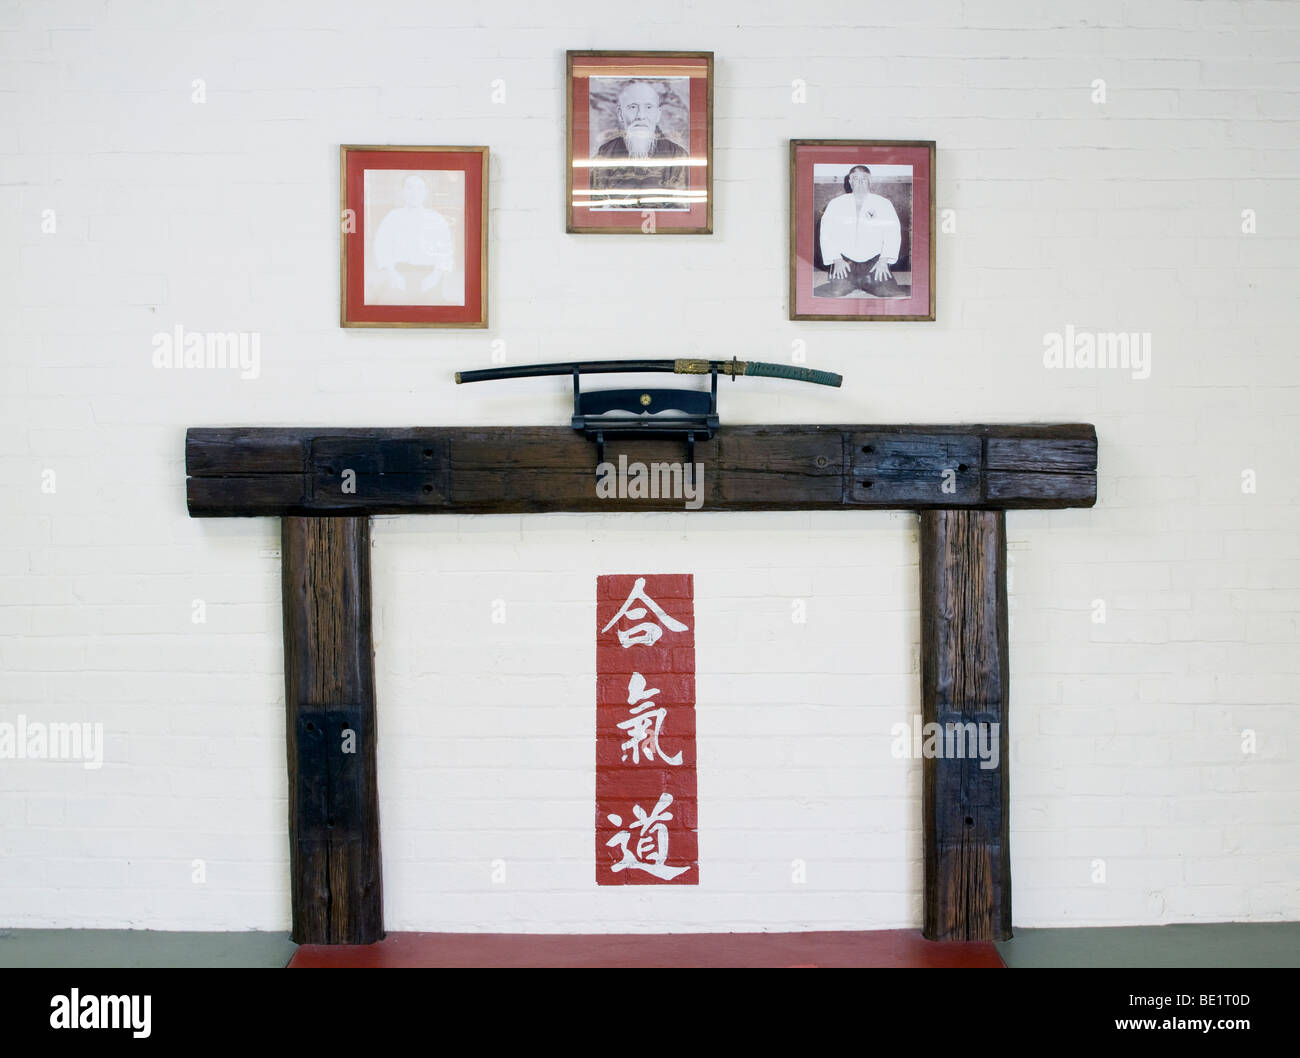 The shomen, or front wall of the dojo. Also the Kamiza or seat of the gods. A wooden structure with a Japanese feel. - Stock Image